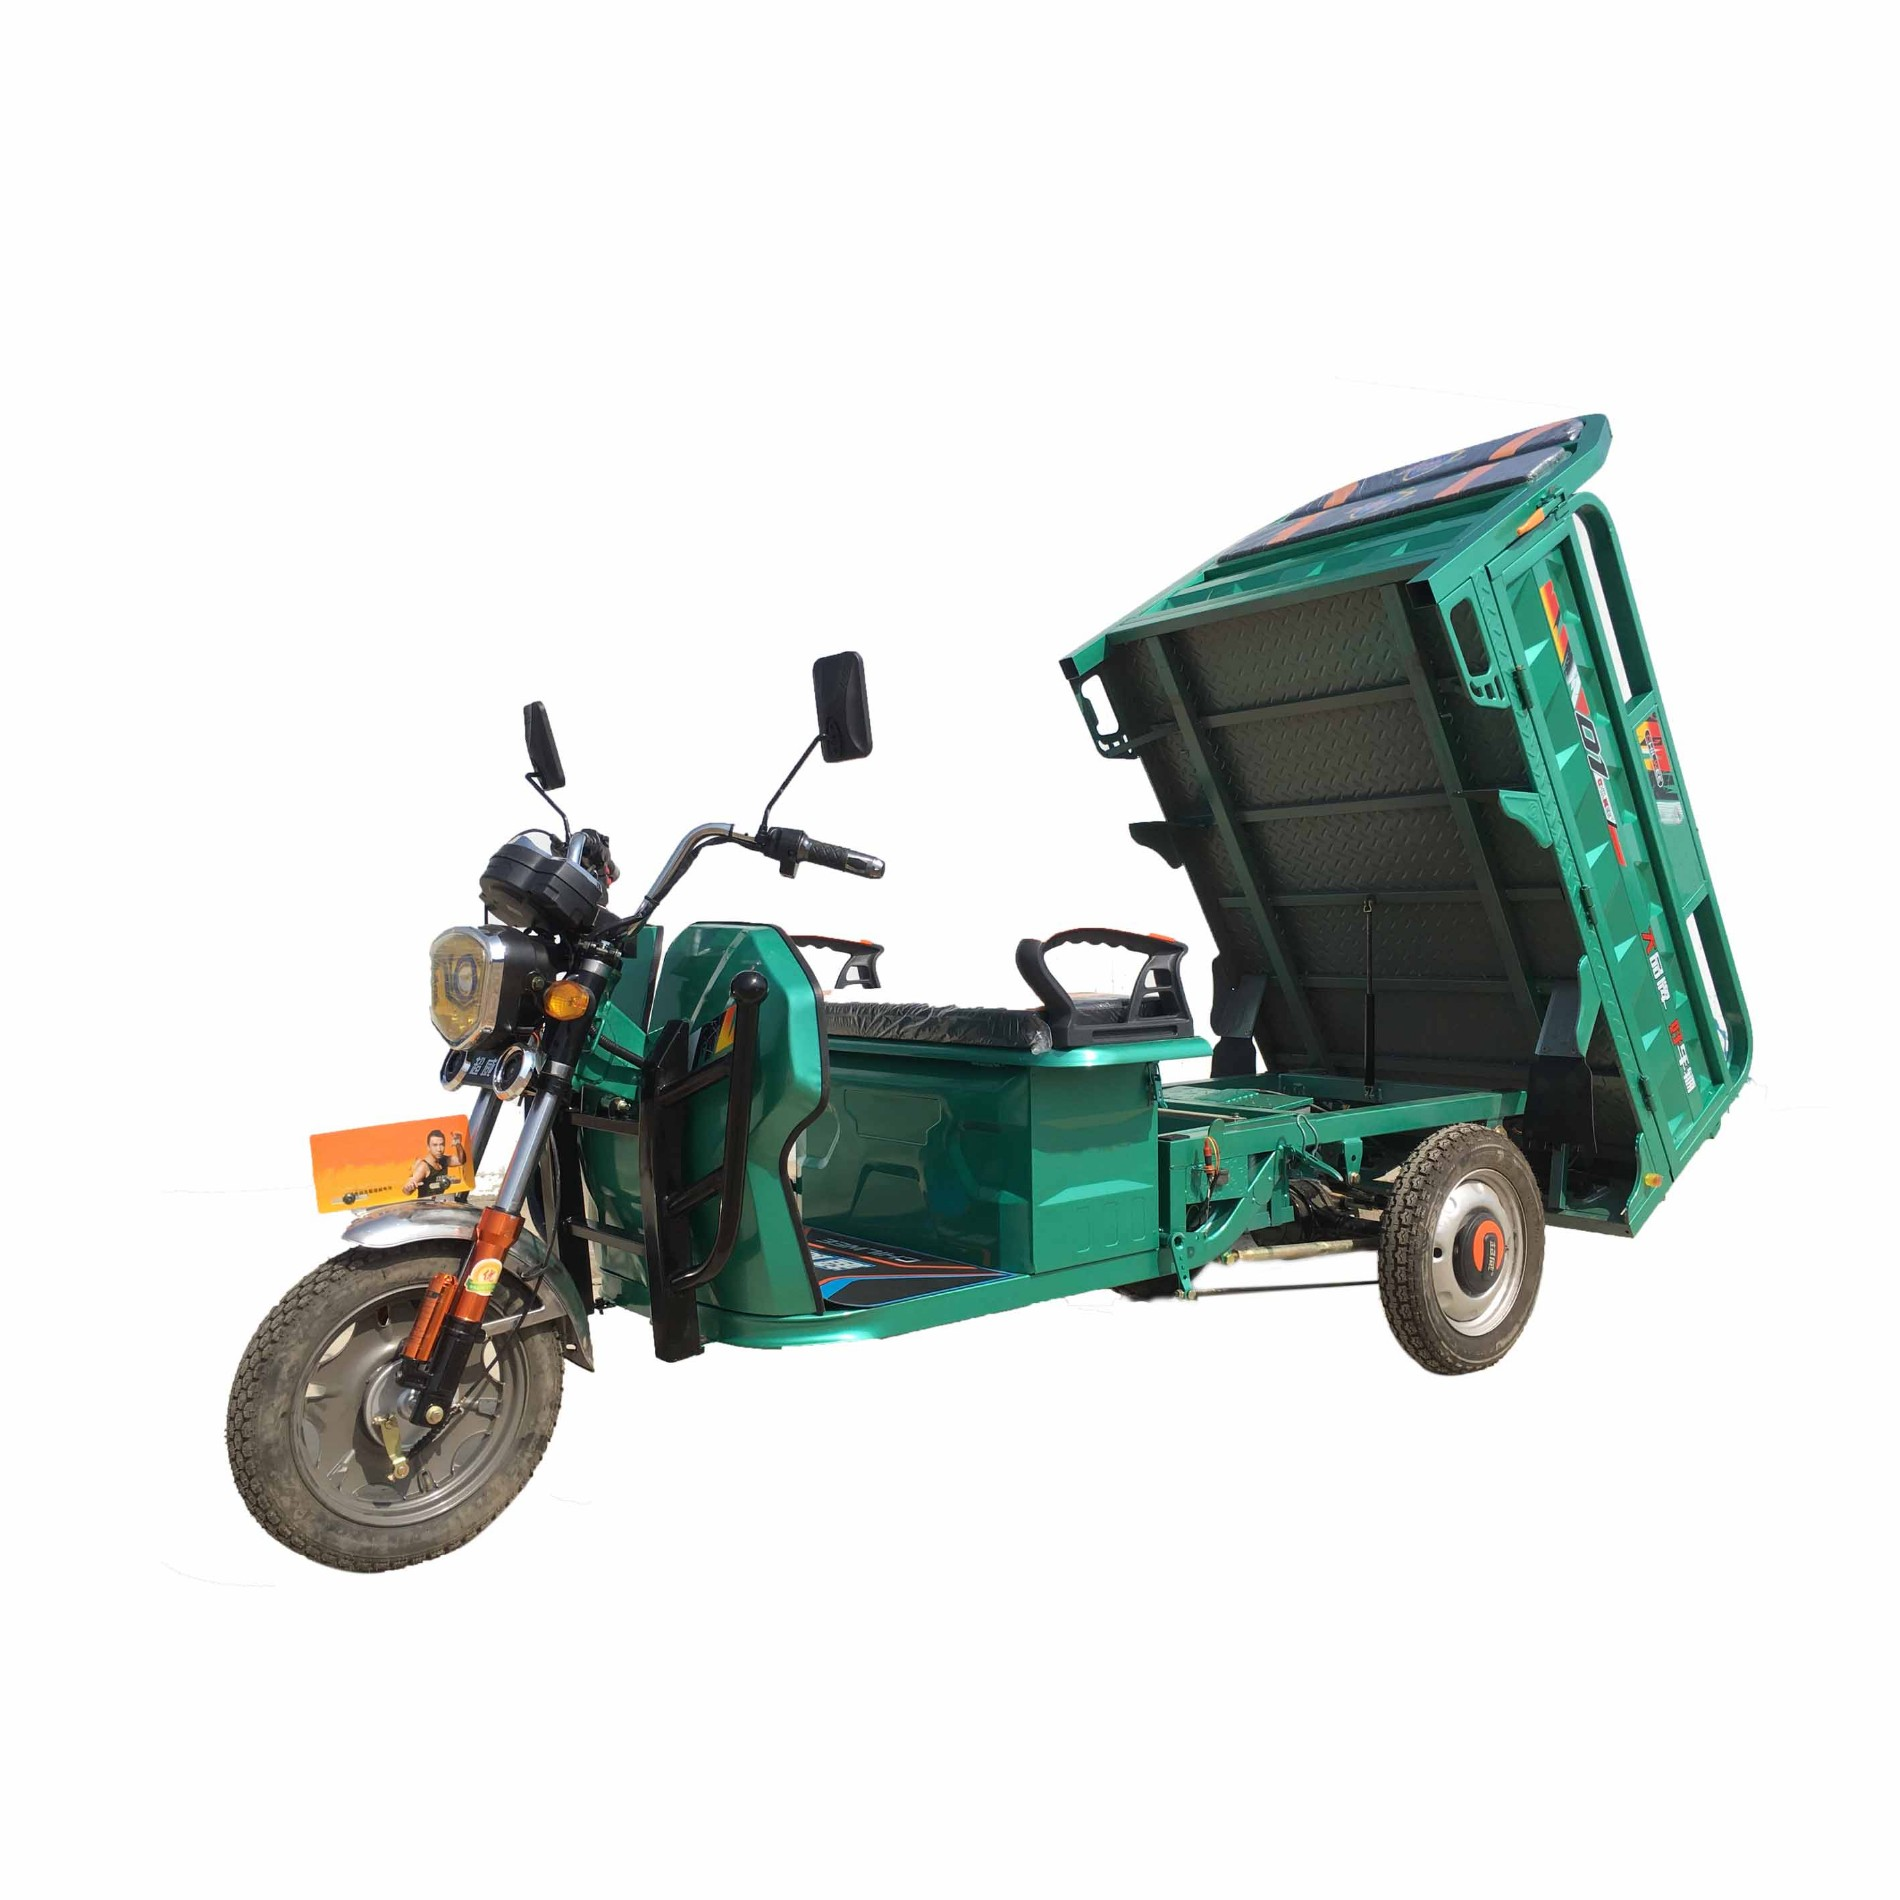 Powerful climbing hill Electric cargo Tricycle with 1000W Motor Model Manufacturers, Powerful climbing hill Electric cargo Tricycle with 1000W Motor Model Factory, Supply Powerful climbing hill Electric cargo Tricycle with 1000W Motor Model